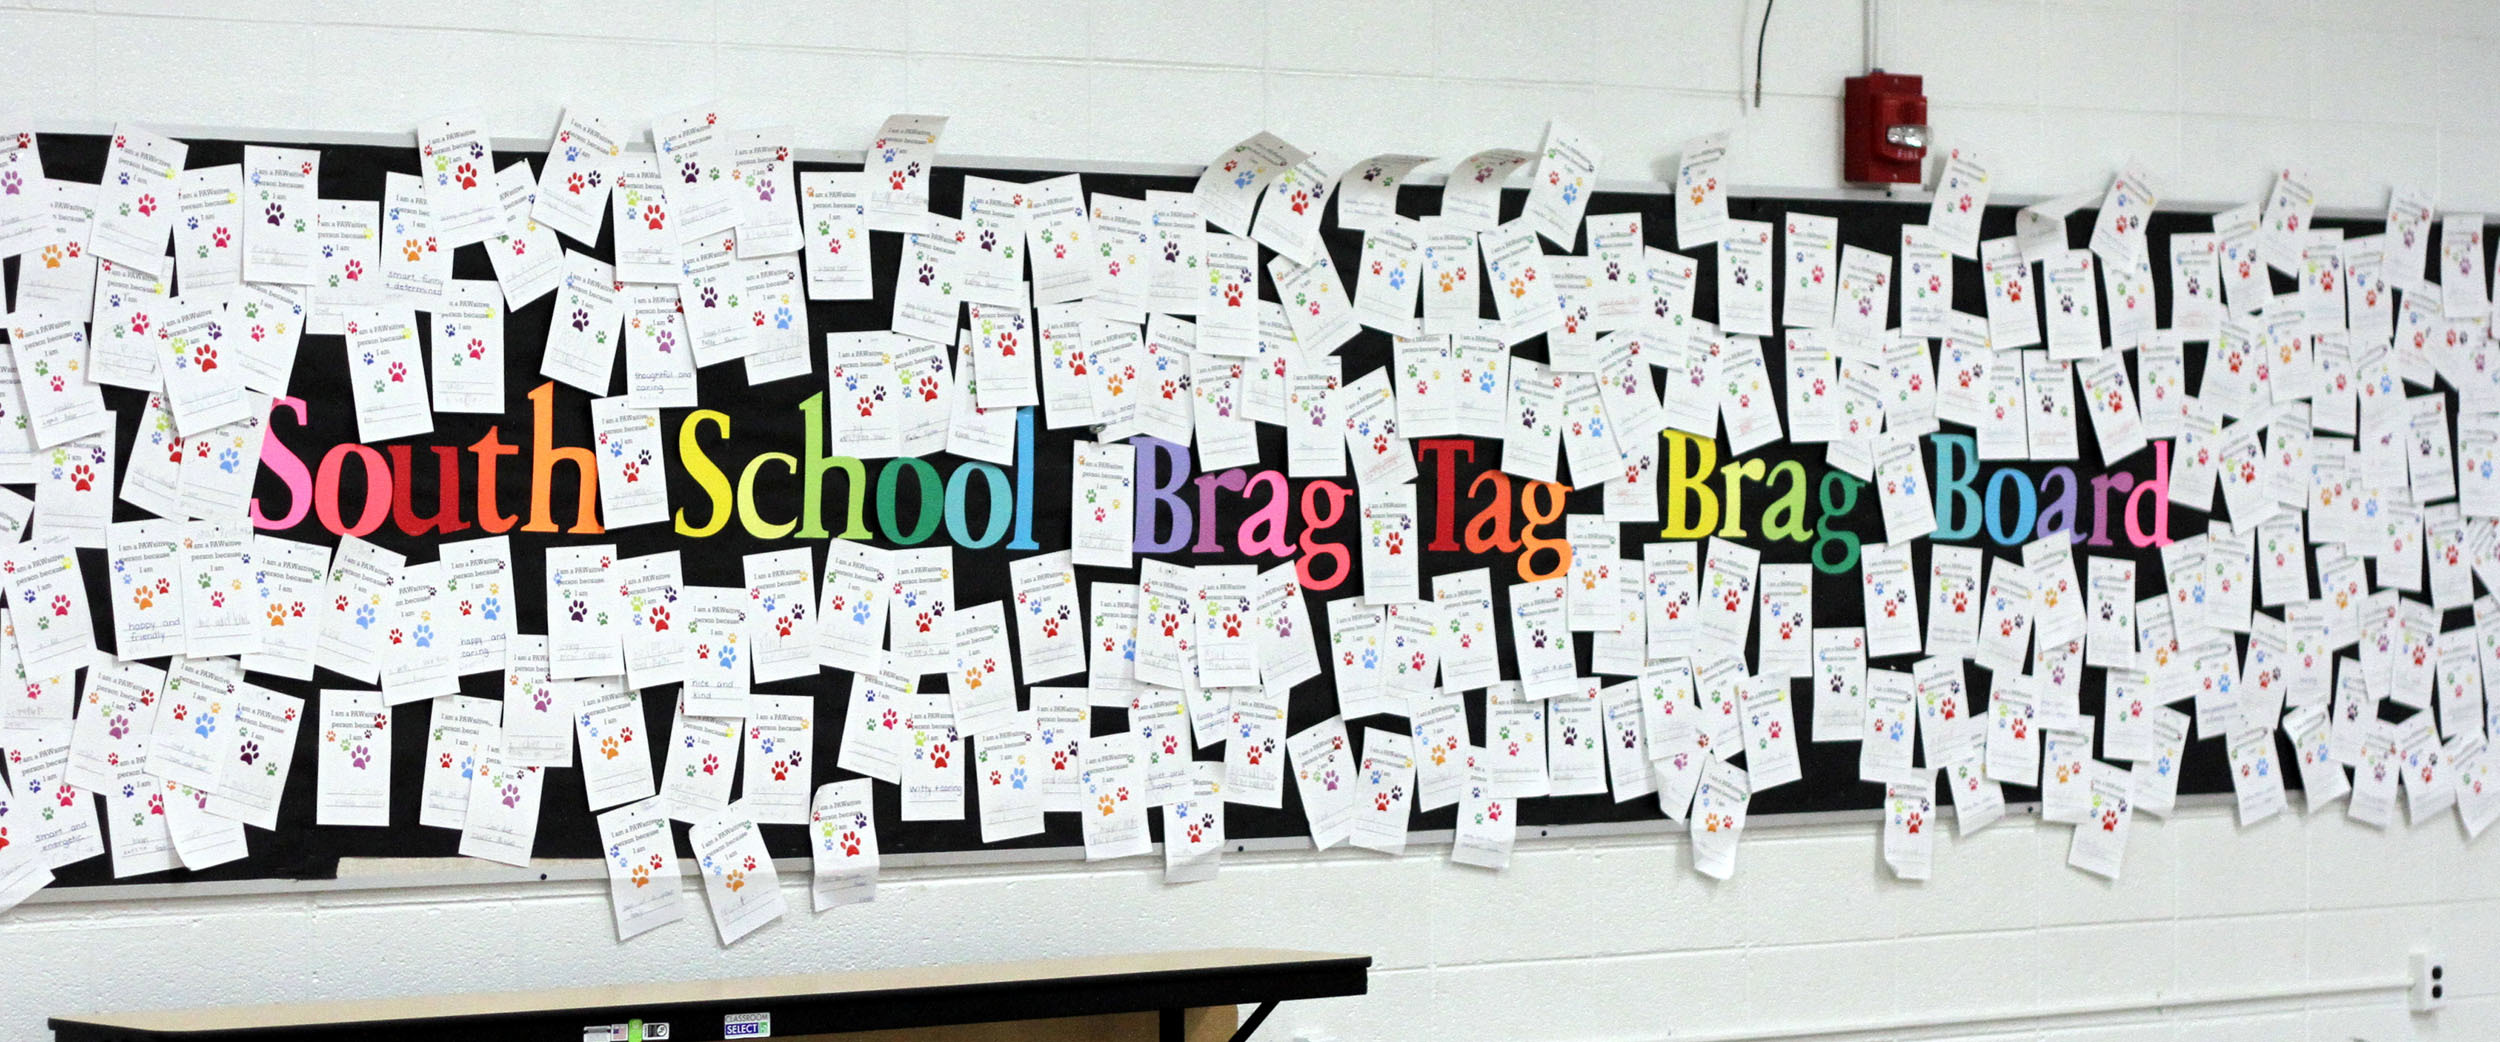 South School Brag Tags